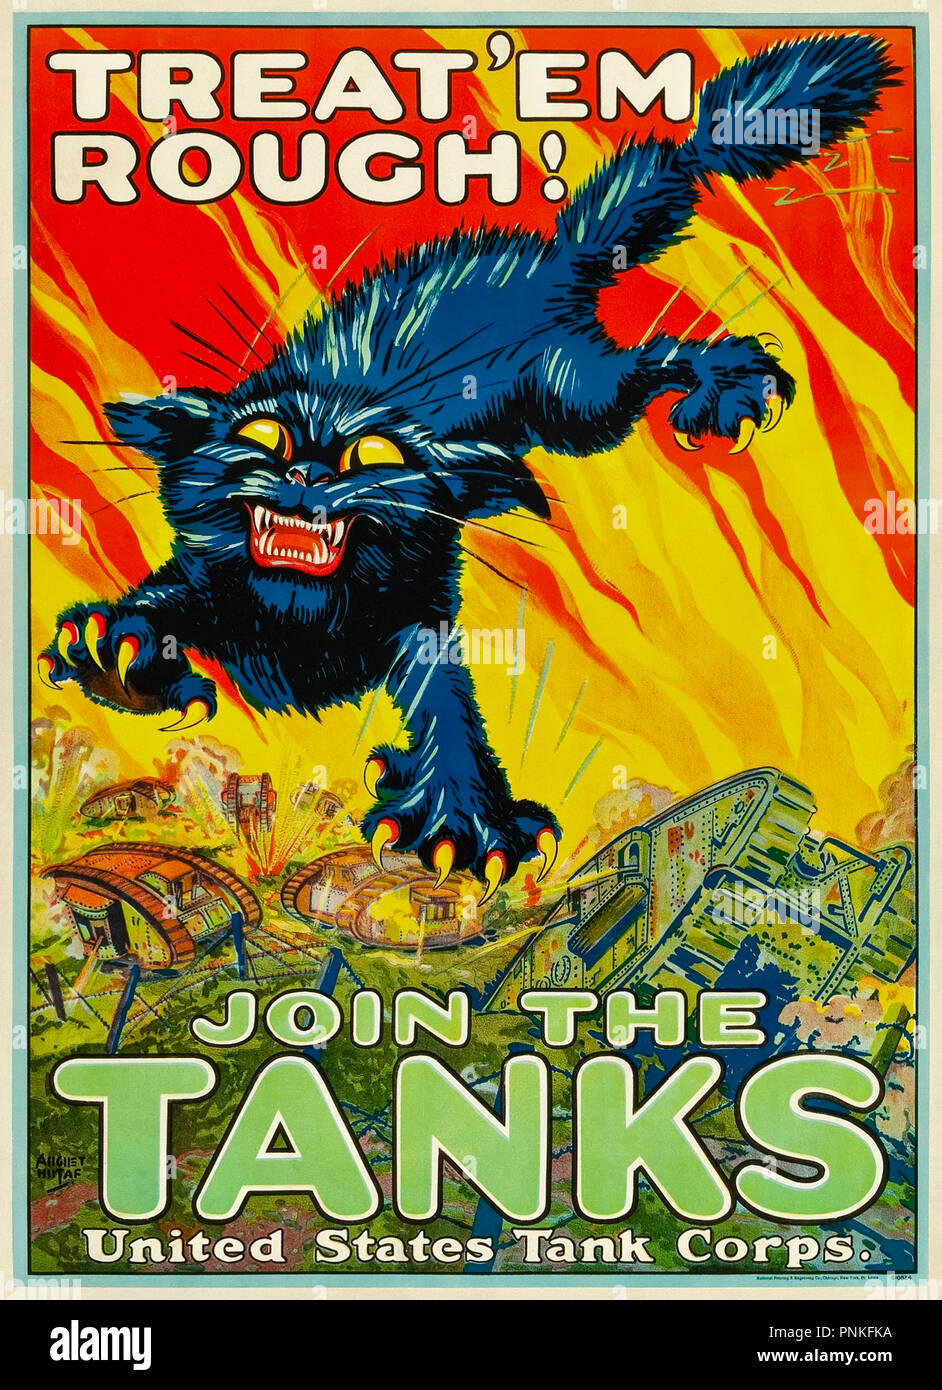 """""""TREAT'EM ROUGH! JOIN THE TANKS""""World War I recruitment poster for the United States Tank Corps, illustration by August """"Gus"""" William Hutaf (1874-1942). - Stock Image"""